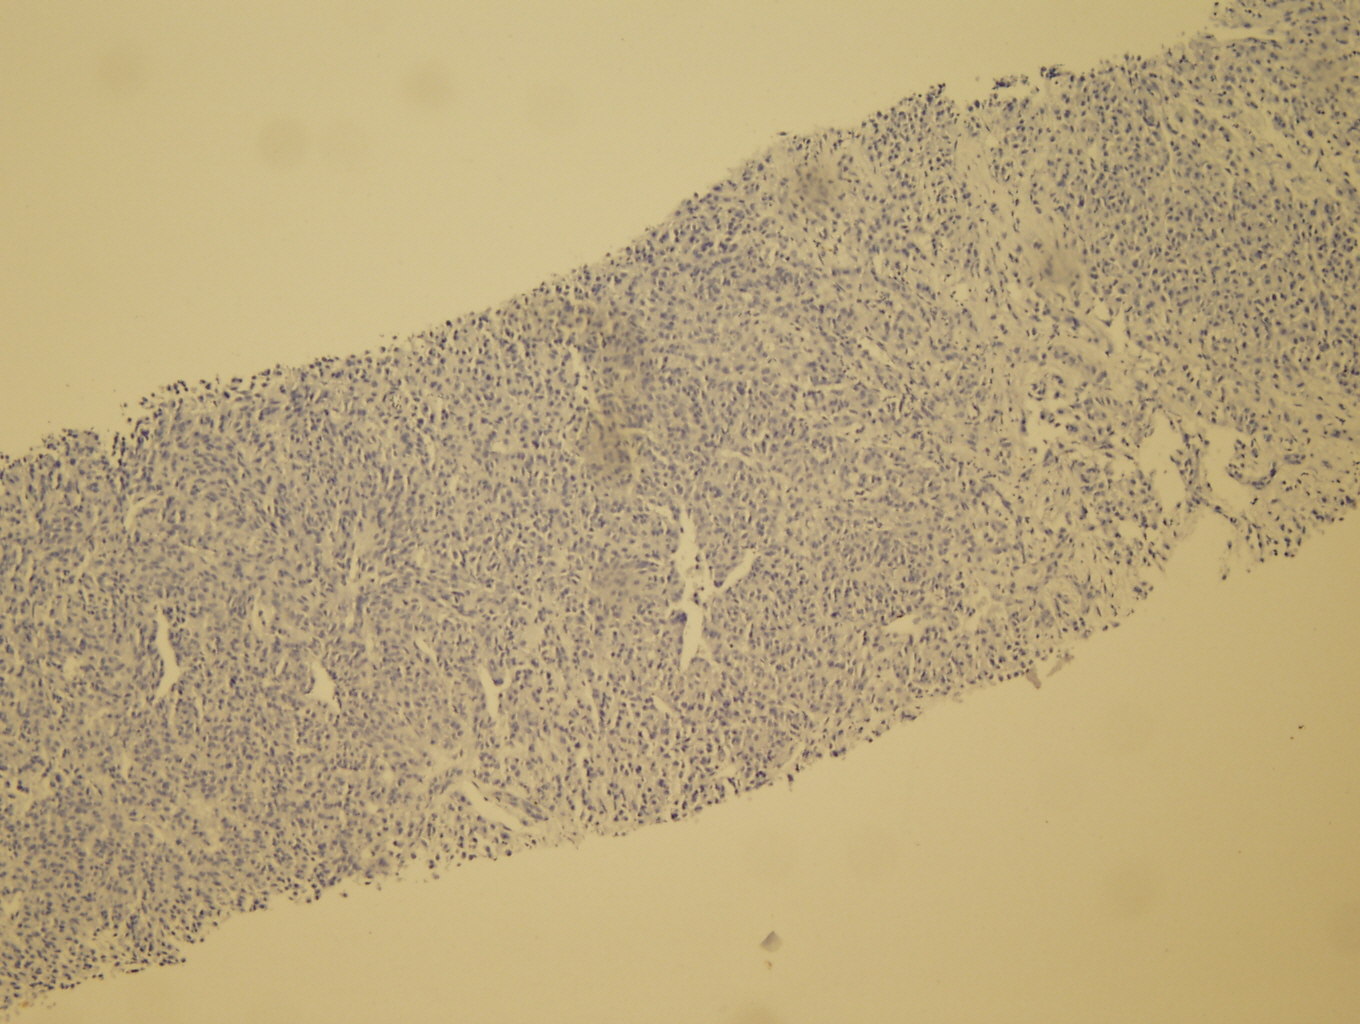 Microscopic image 5 - Liver core biopsy, S100 (Click to enlarge)